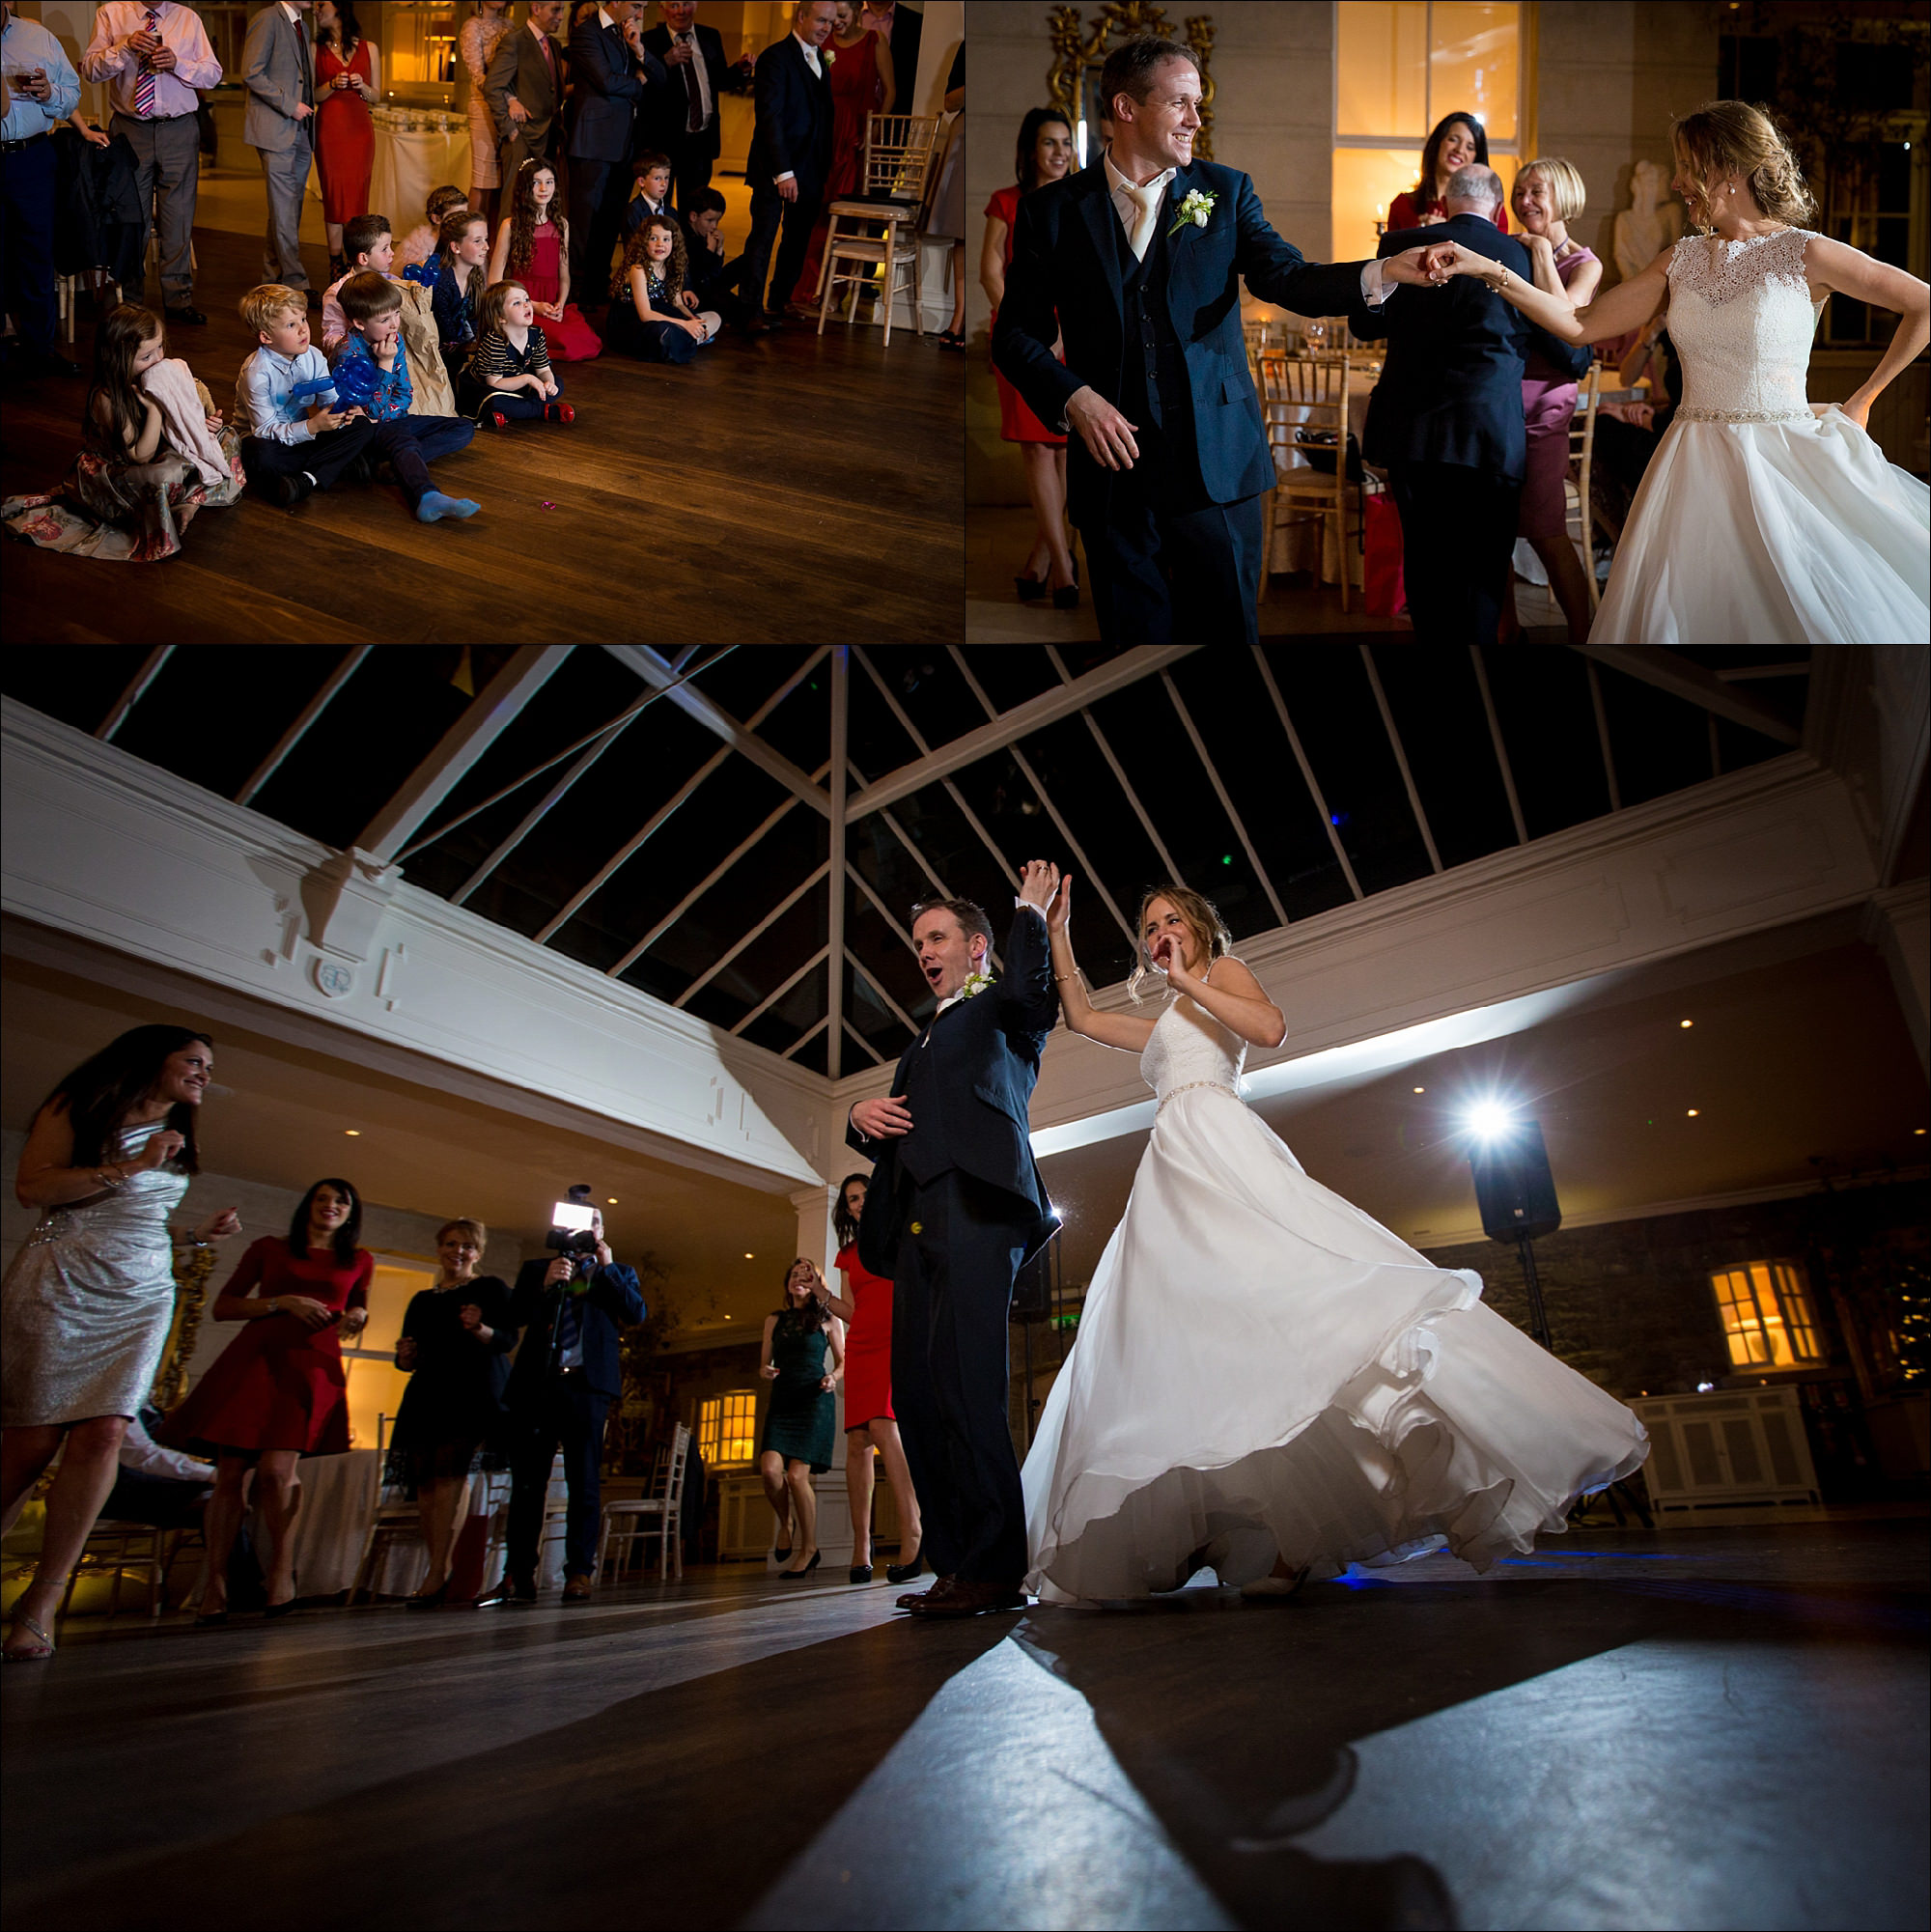 dublin wedding photographer david duignan photography tankardstown weddings slane rathfeigh church ireland 0056